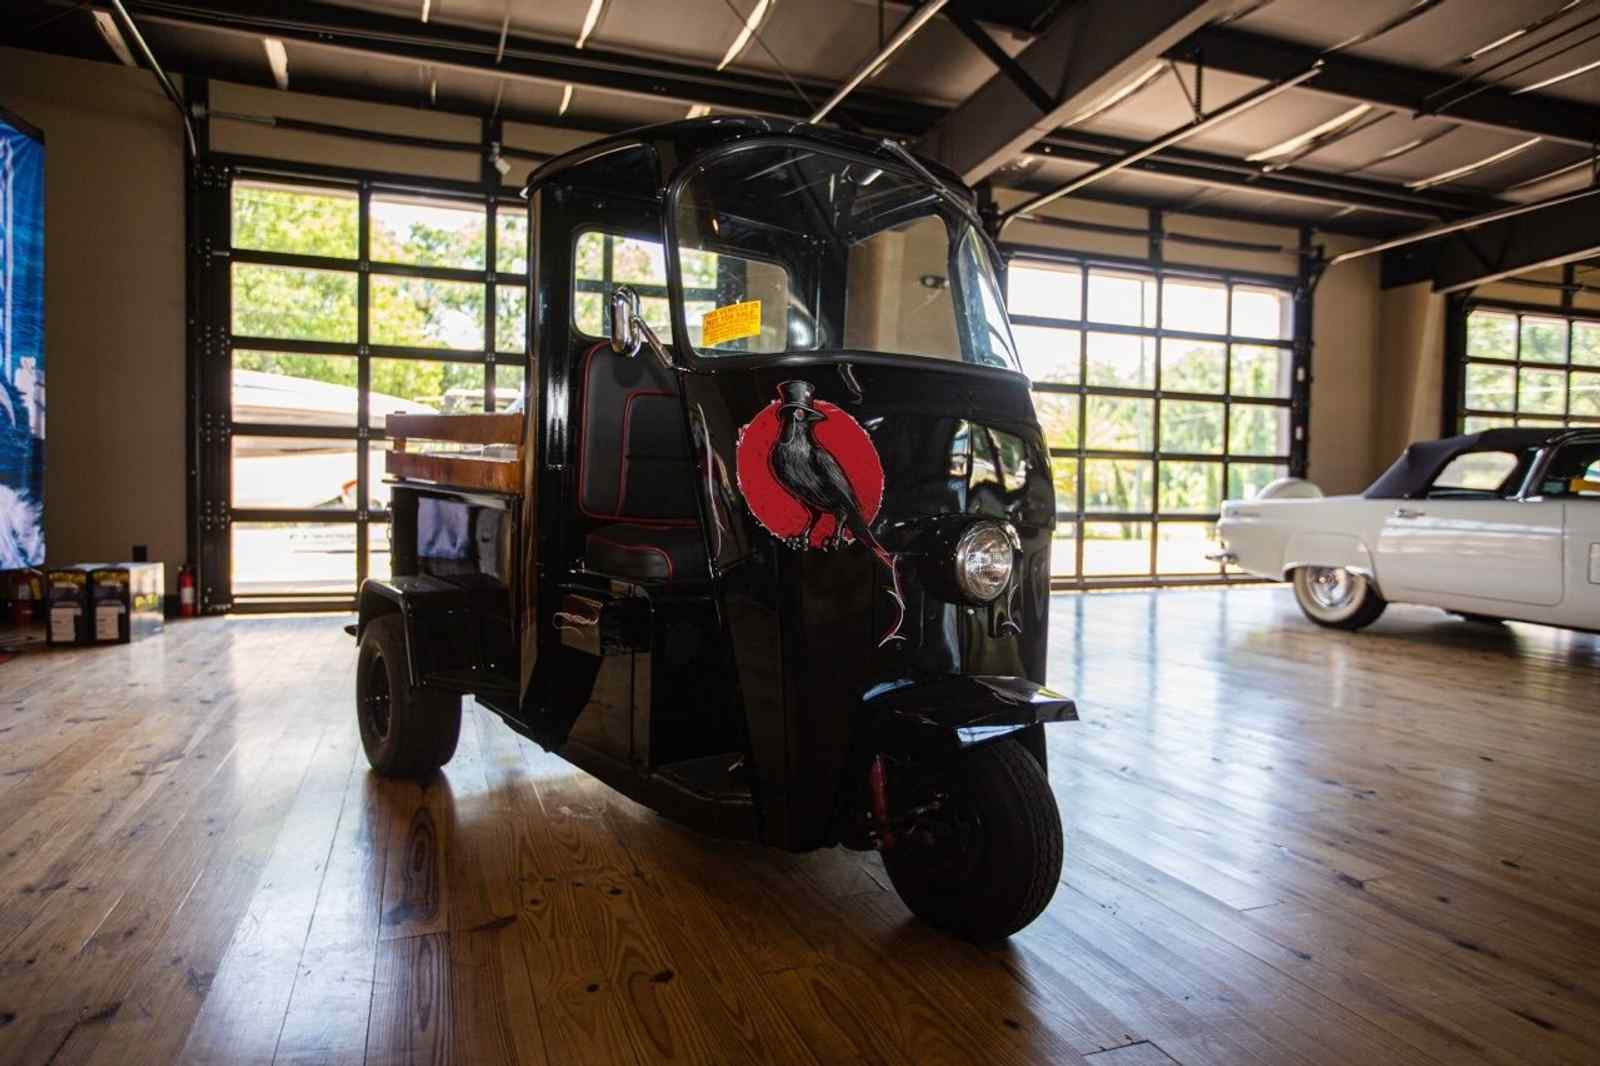 Congress of Country Music Adds Two Classic Cars to Collection